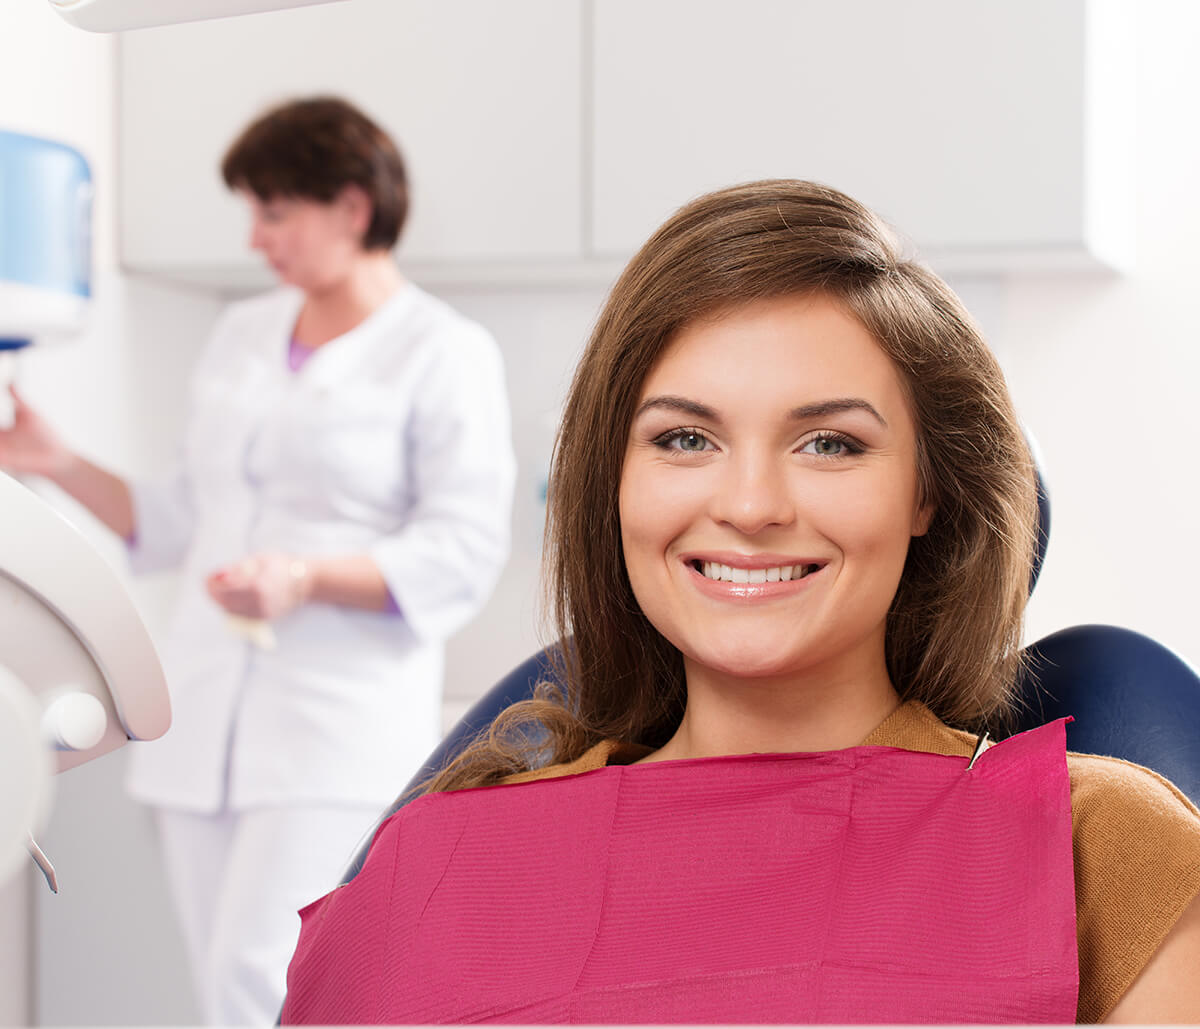 Cosmetic Dentistry Options with AZ Dental Wellness in Scottsdale Area